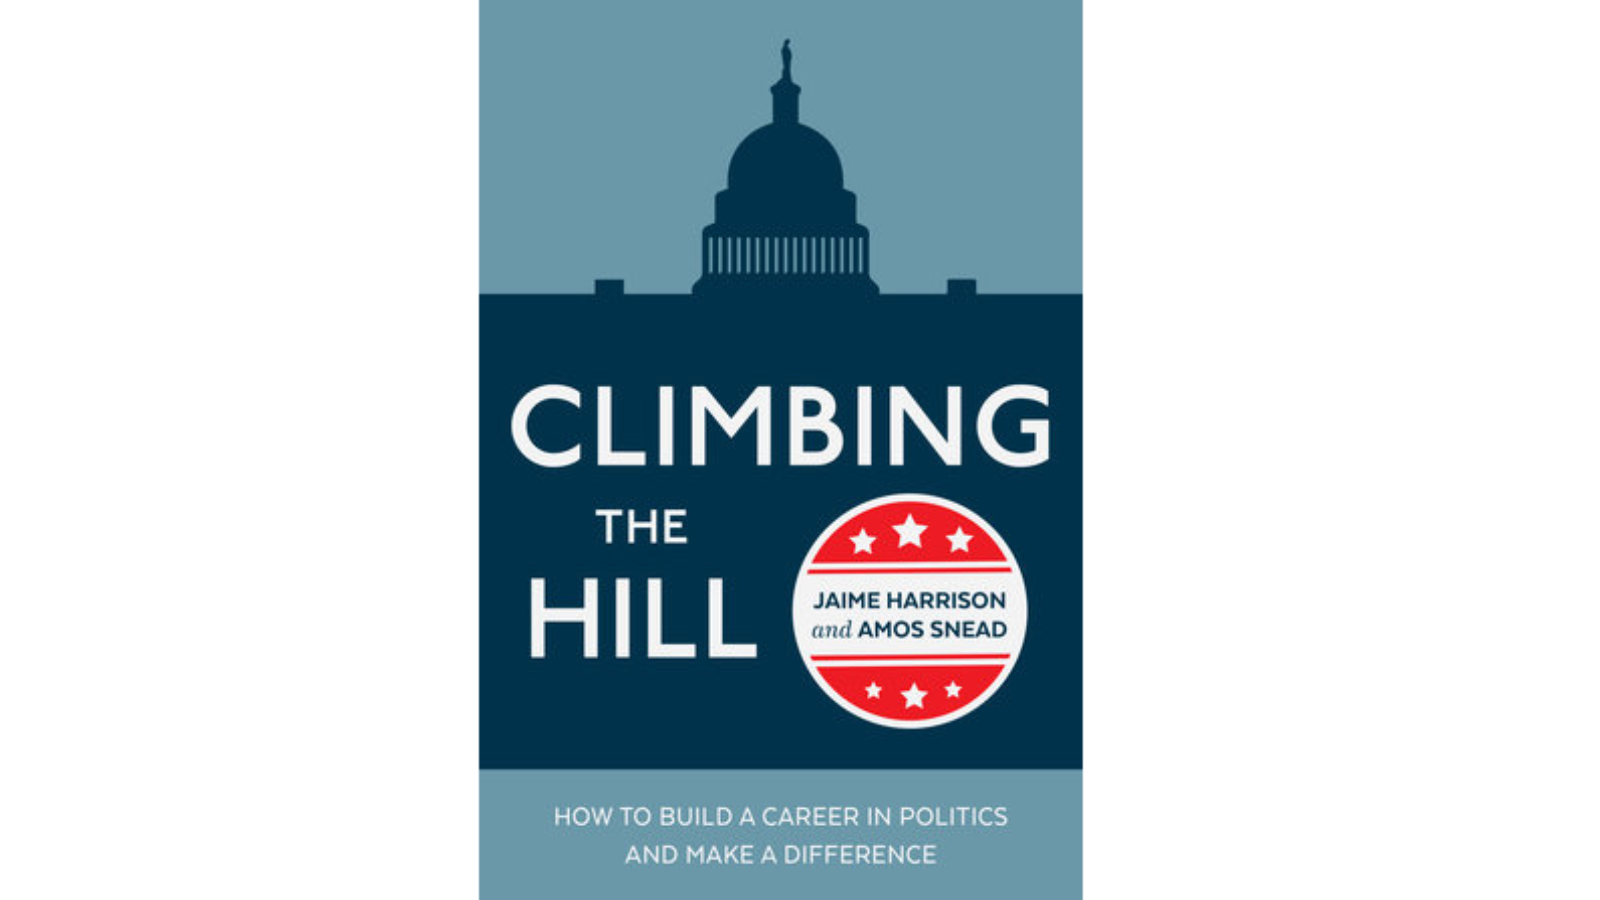 new book, Climbing the Hill: How to Build a Career in Politics and Make a Difference - bookcover